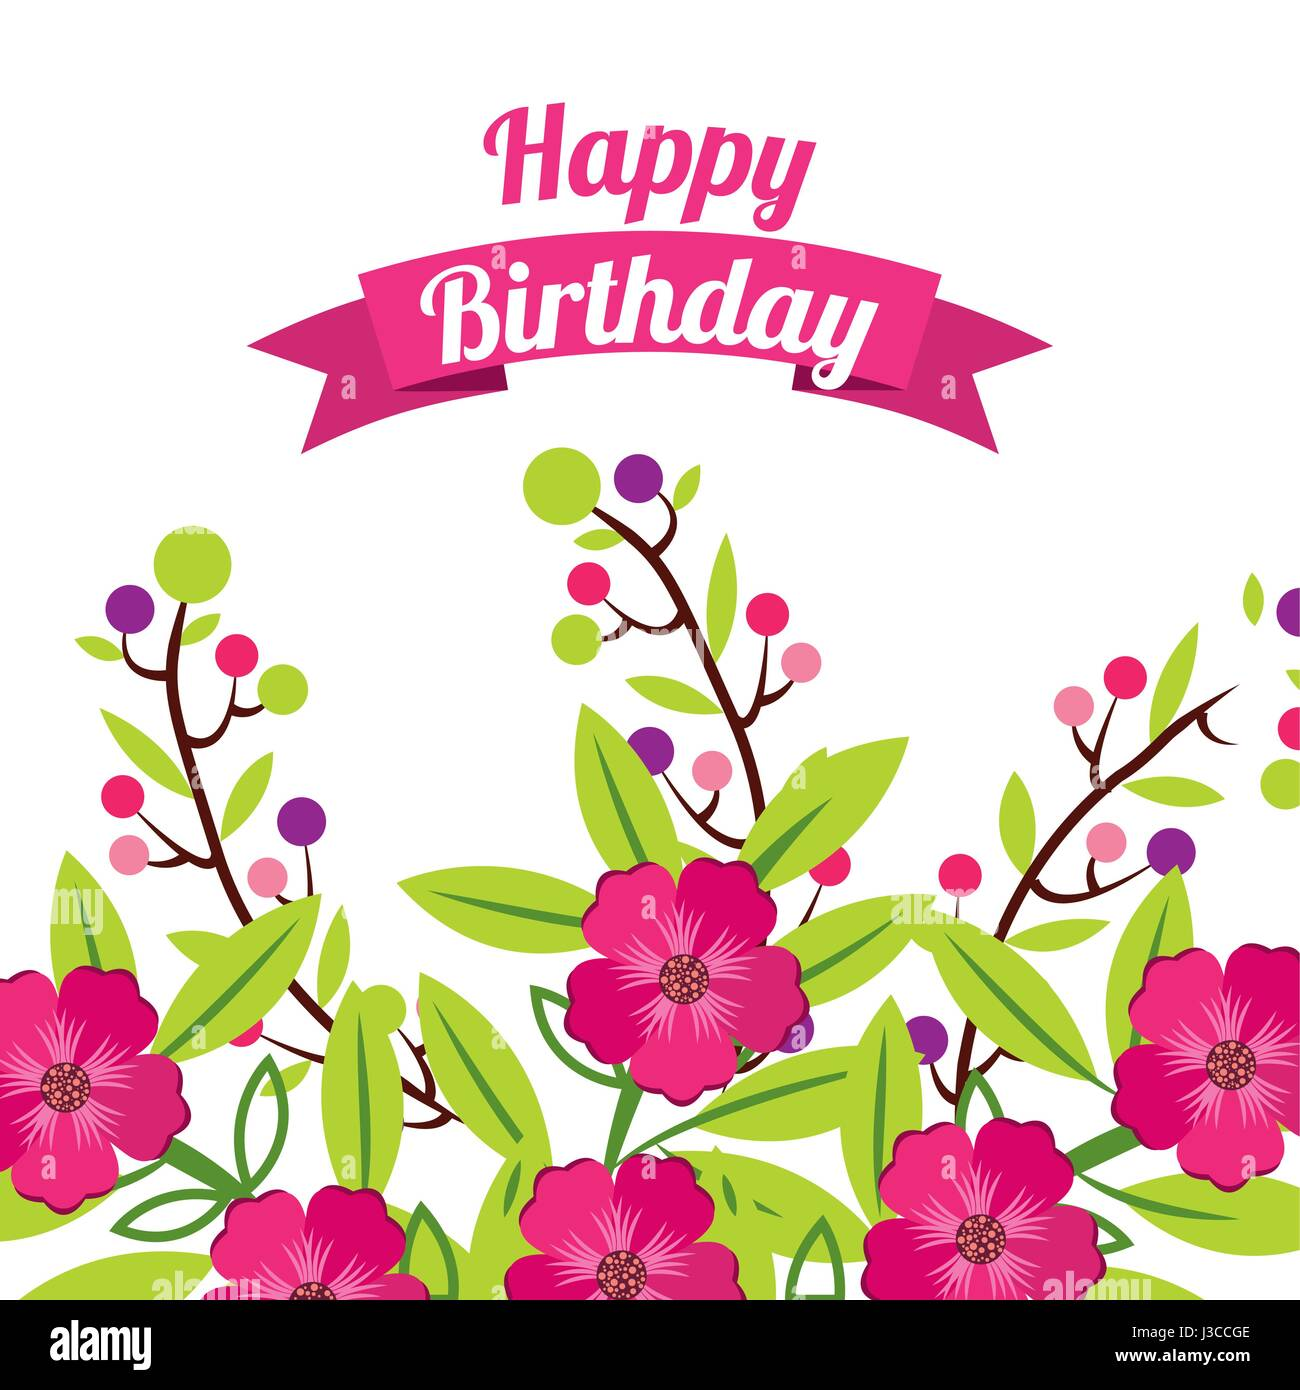 Happy birthday greeting card background vector illustration stock happy birthday celebration poster floral stock image izmirmasajfo